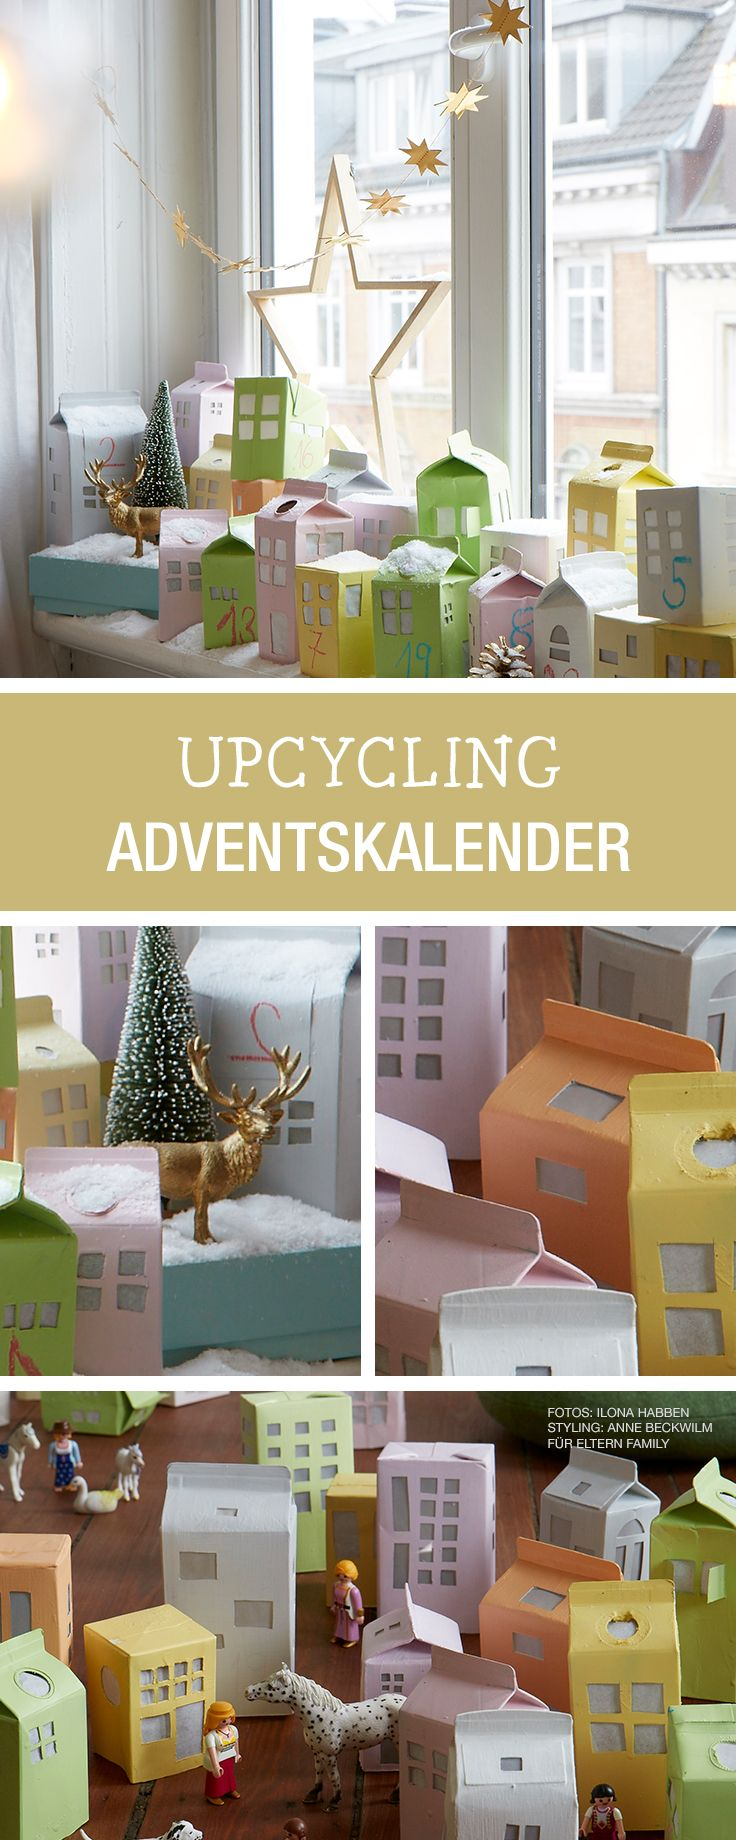 DIY-Anleitung: Adventskalender aus Milchpackungen upcyclen, Basteln mit Kindern / DIY tutorial: upcycling advent calendar made of milk cartons, getting crafty with kids via DaWanda.com